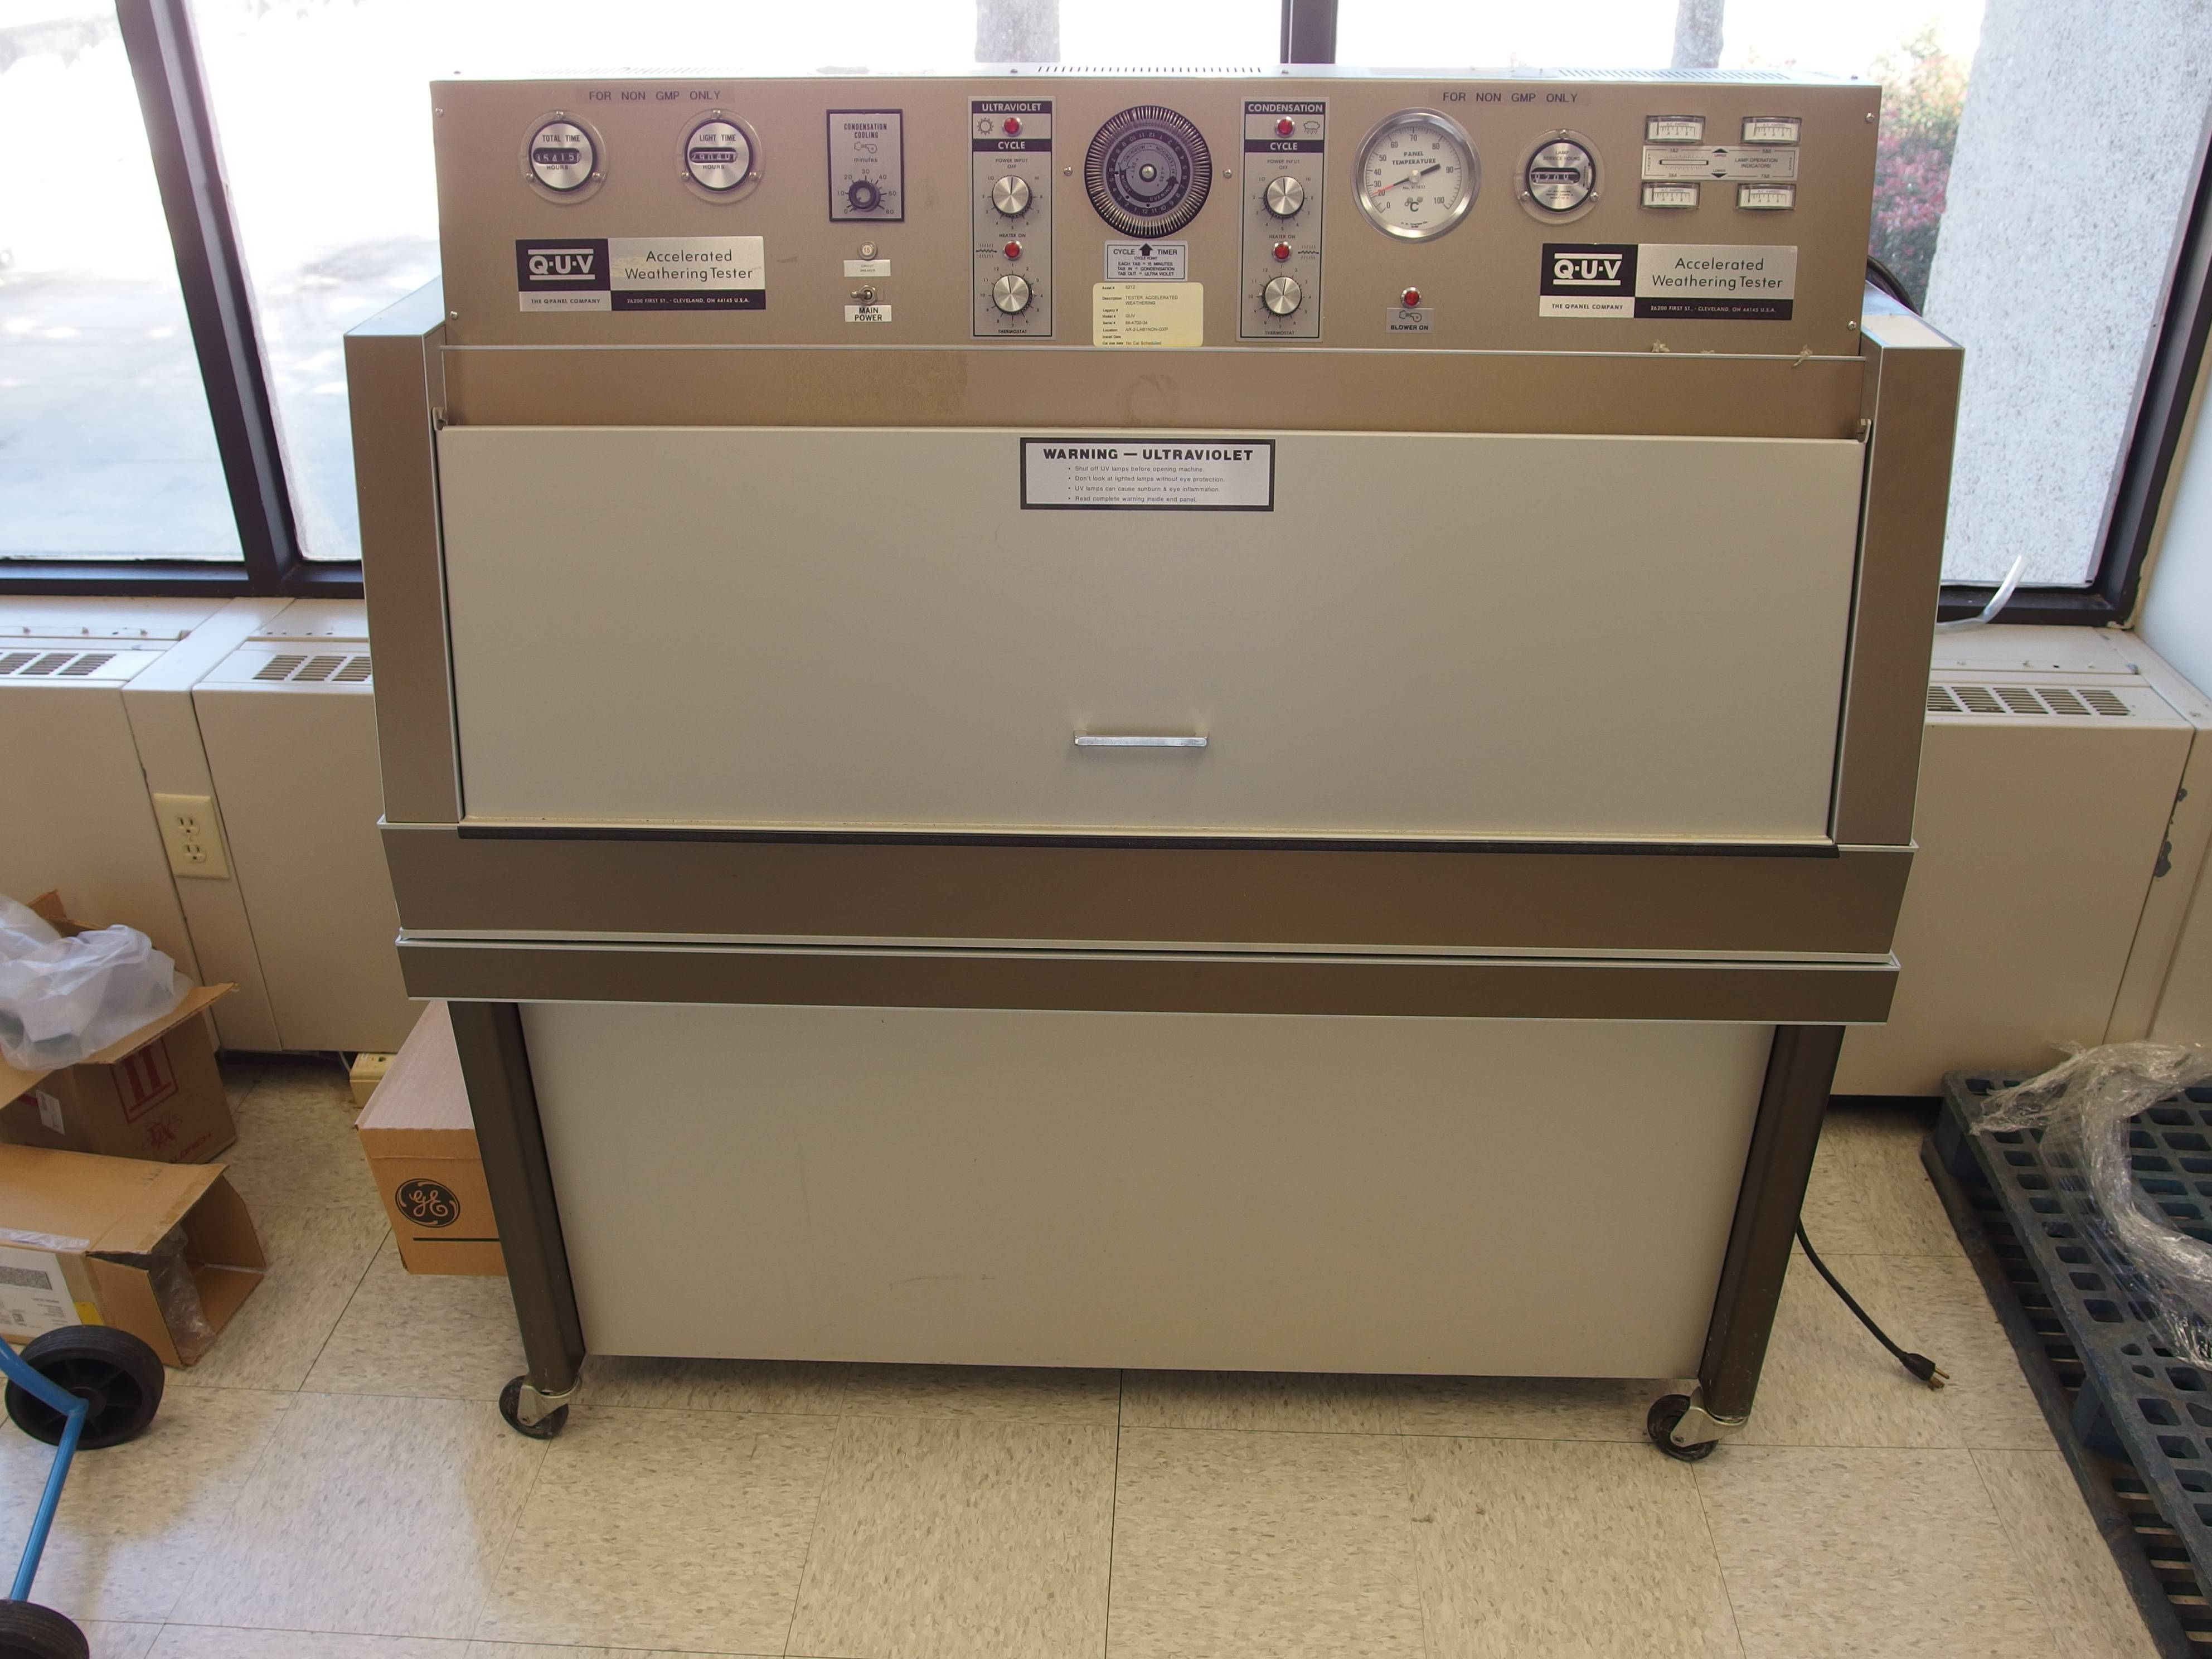 Image of Q-Panel-QUV-Accelerated-Weather-Tester by EquipNet, Inc.